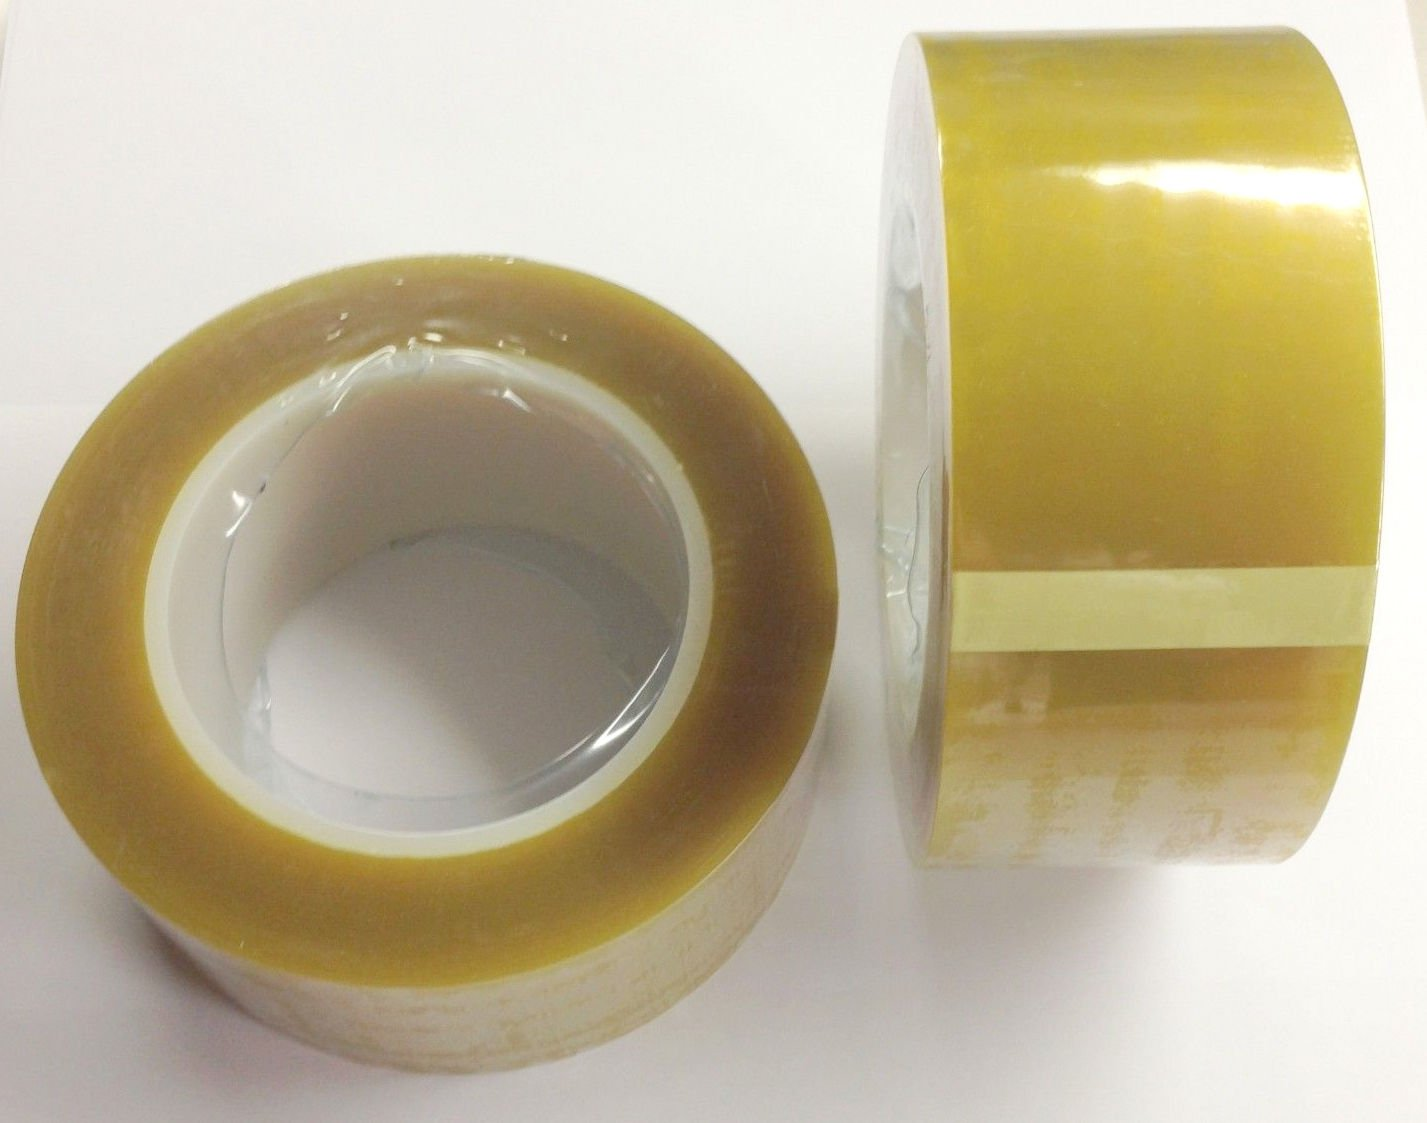 (2) HIGH TEMPERATURE POWDER COATING POLYESTER SILICONE MASKING TAPE 2'' X 72 YDS